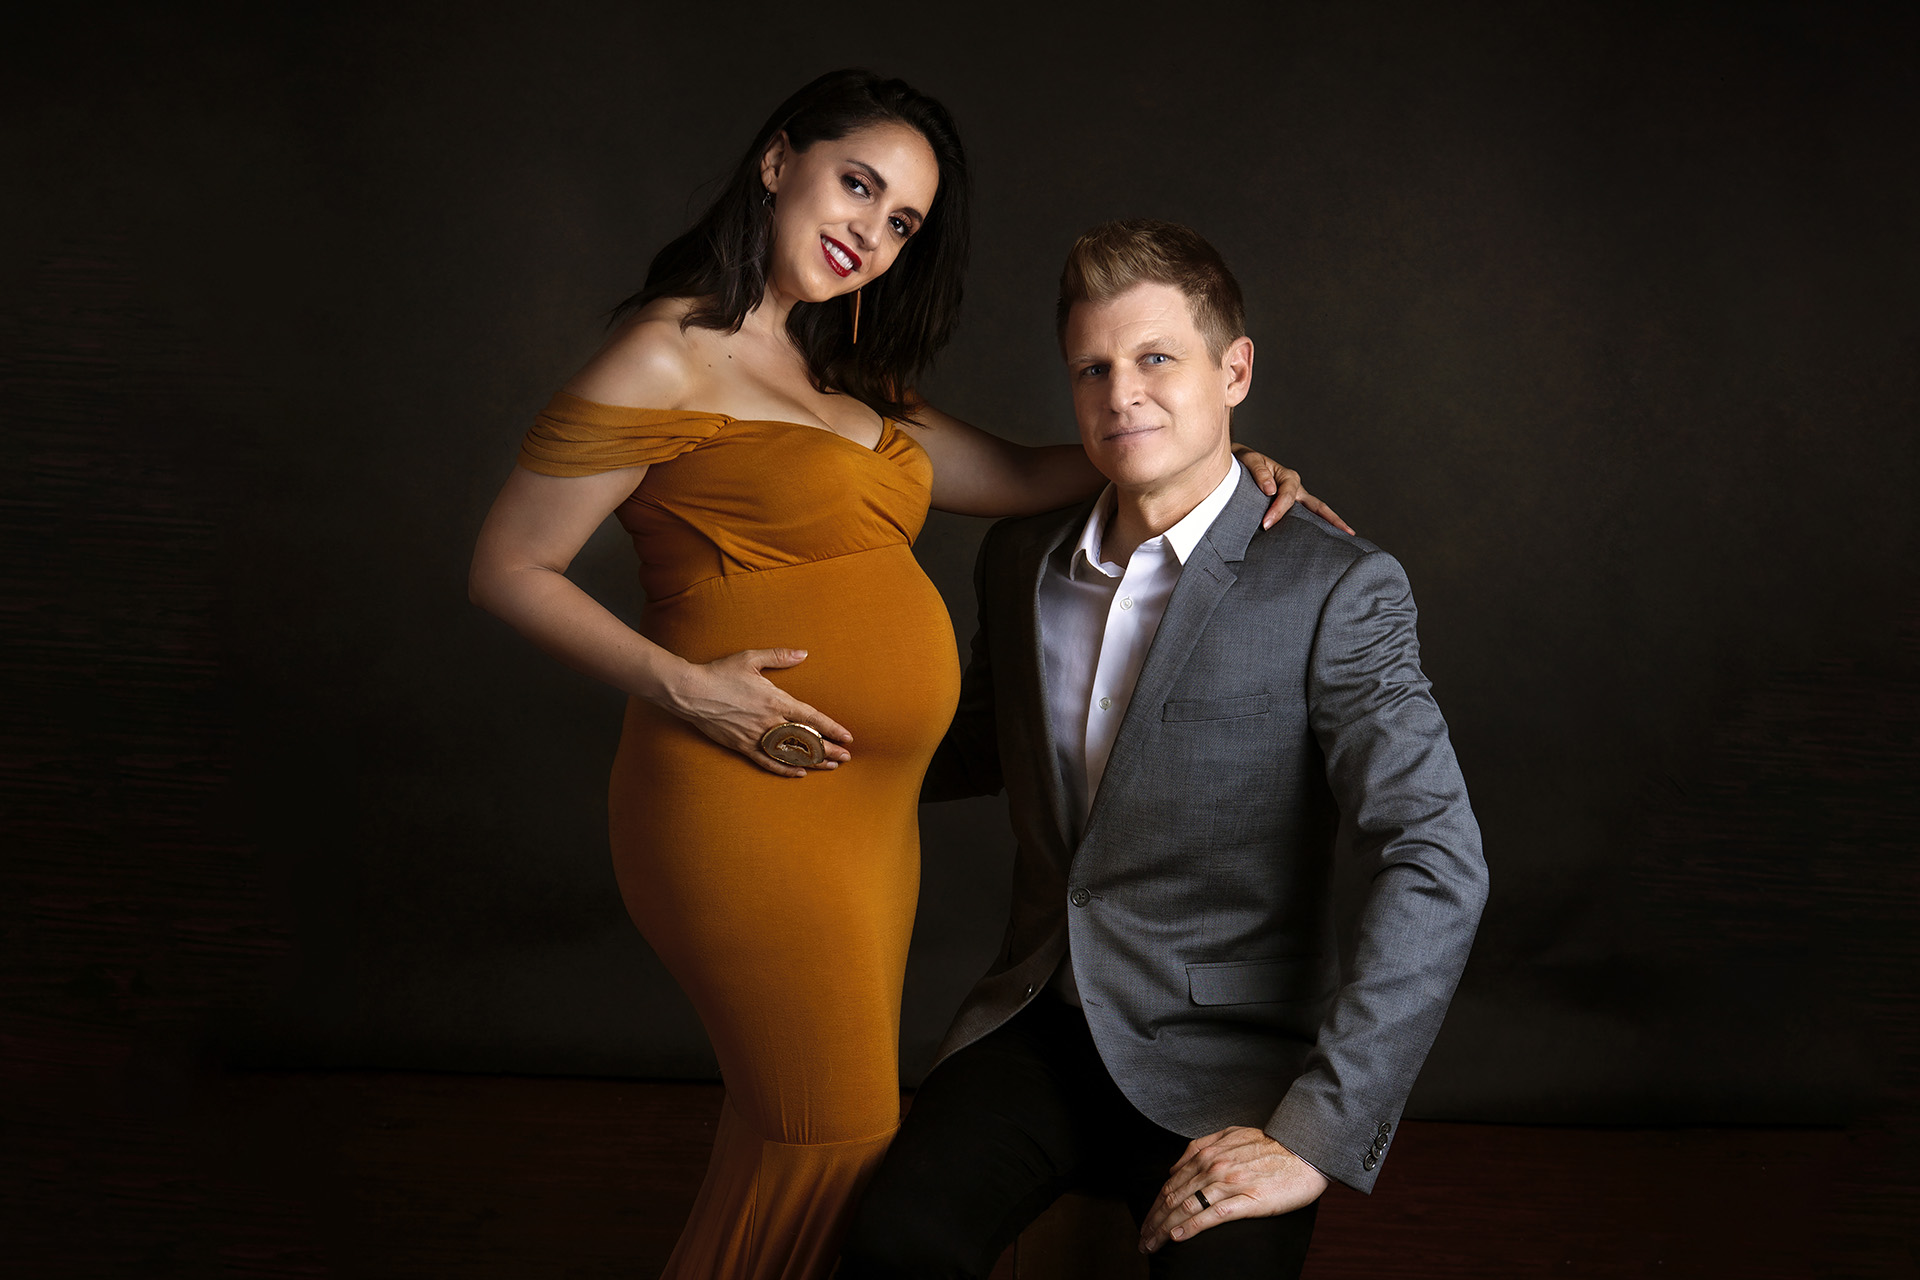 Los Angeles maternity portrait of a woman in a gold dress and her partner by Birth and Beauty